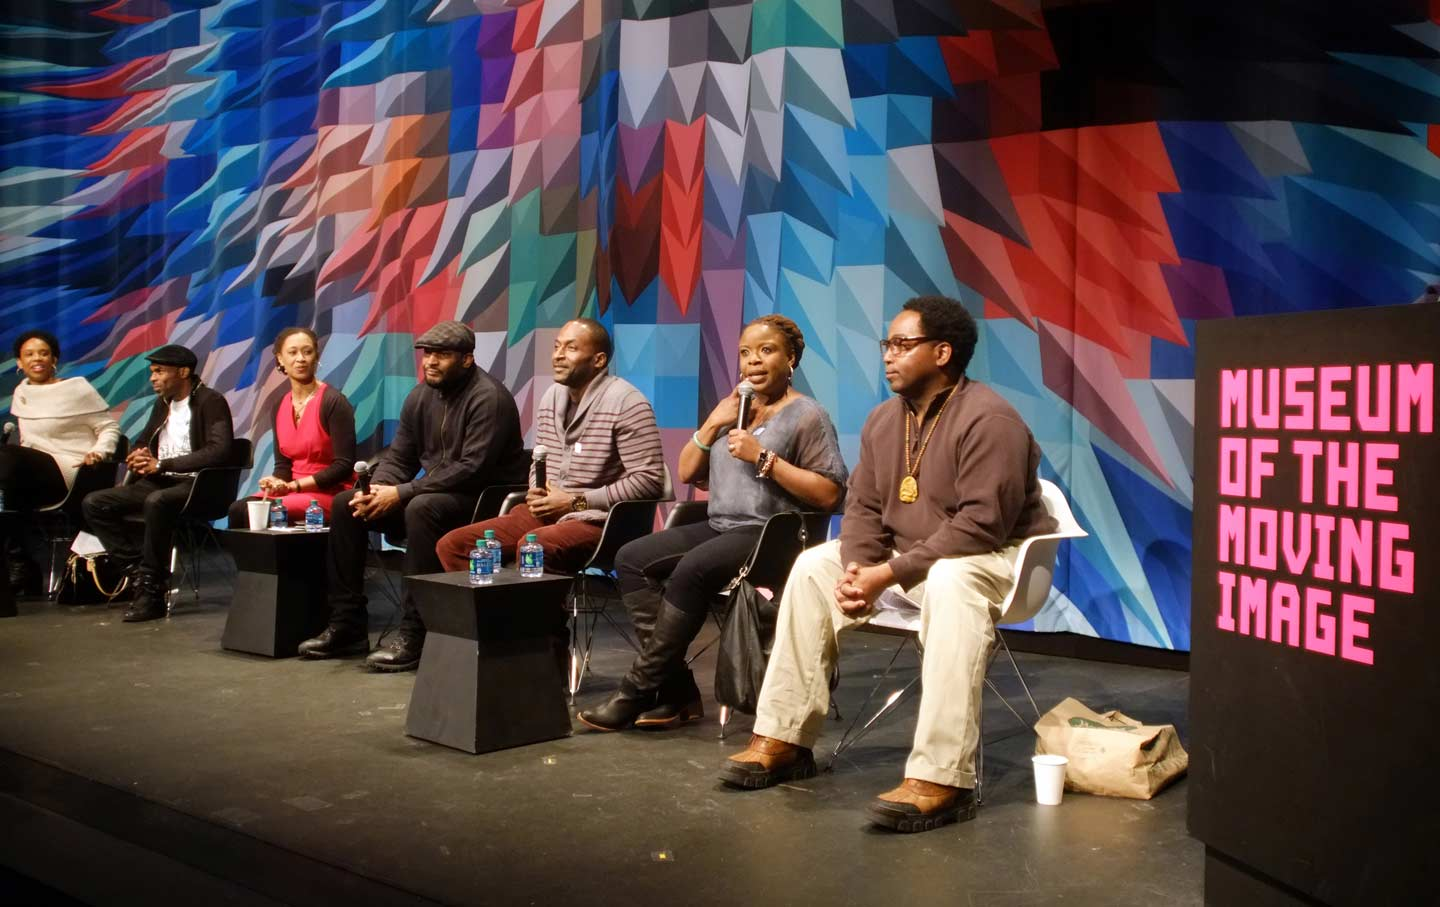 Panel discussion at Museum of the Moving Image